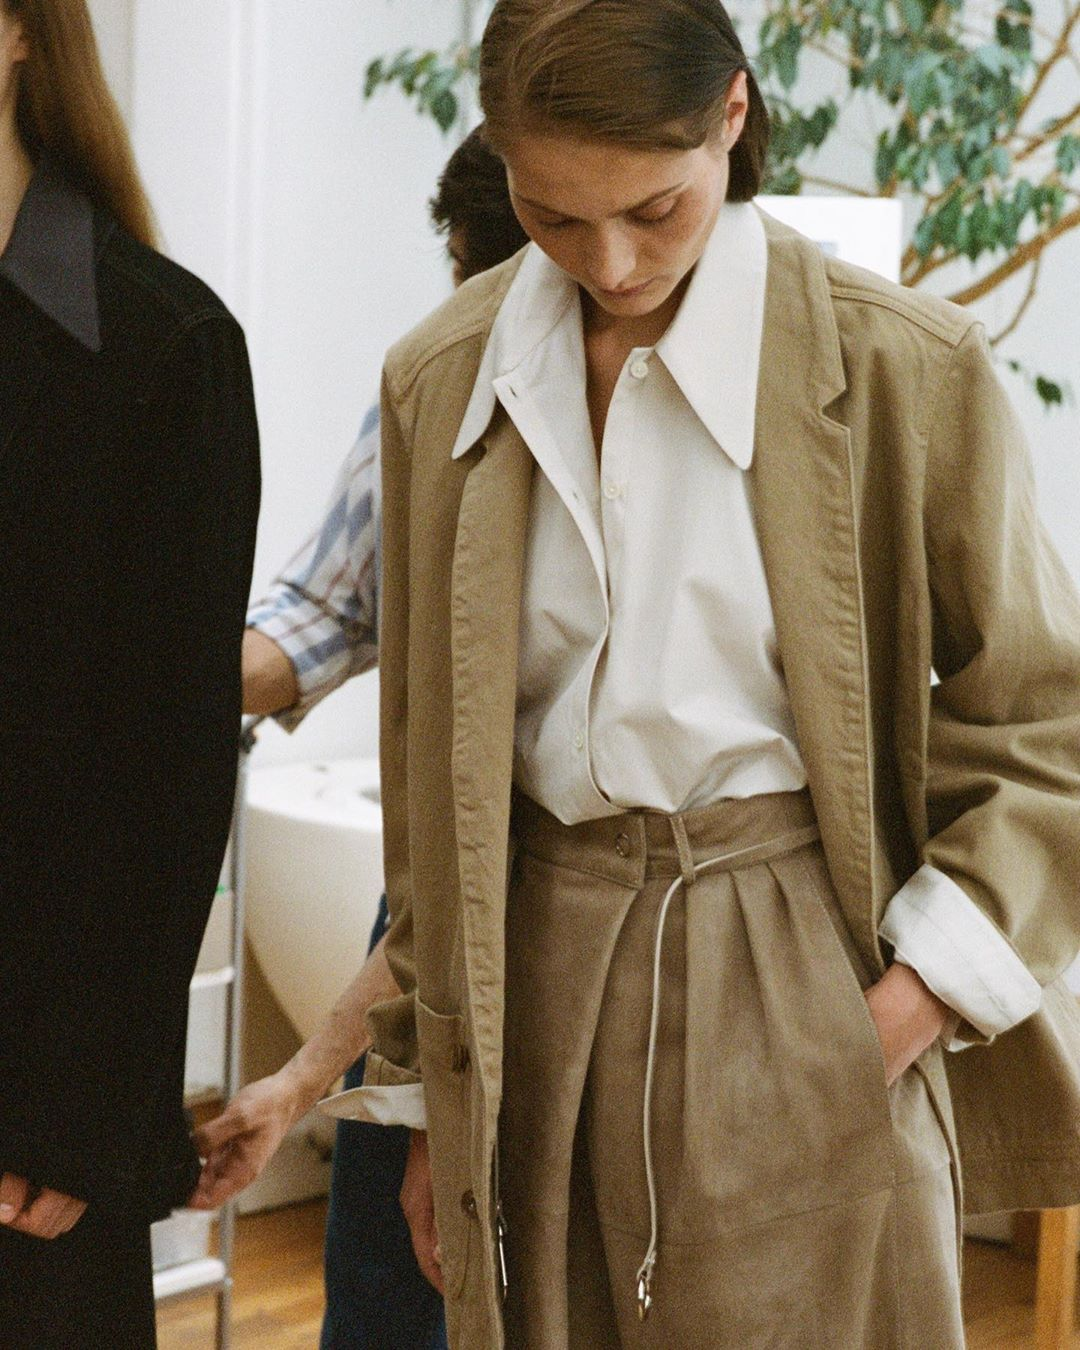 """Lemaire on Instagram: """"Pre-Spring 2020 fittings at rue du Temple. #lemaire"""" from pinterest 1/17/2020"""